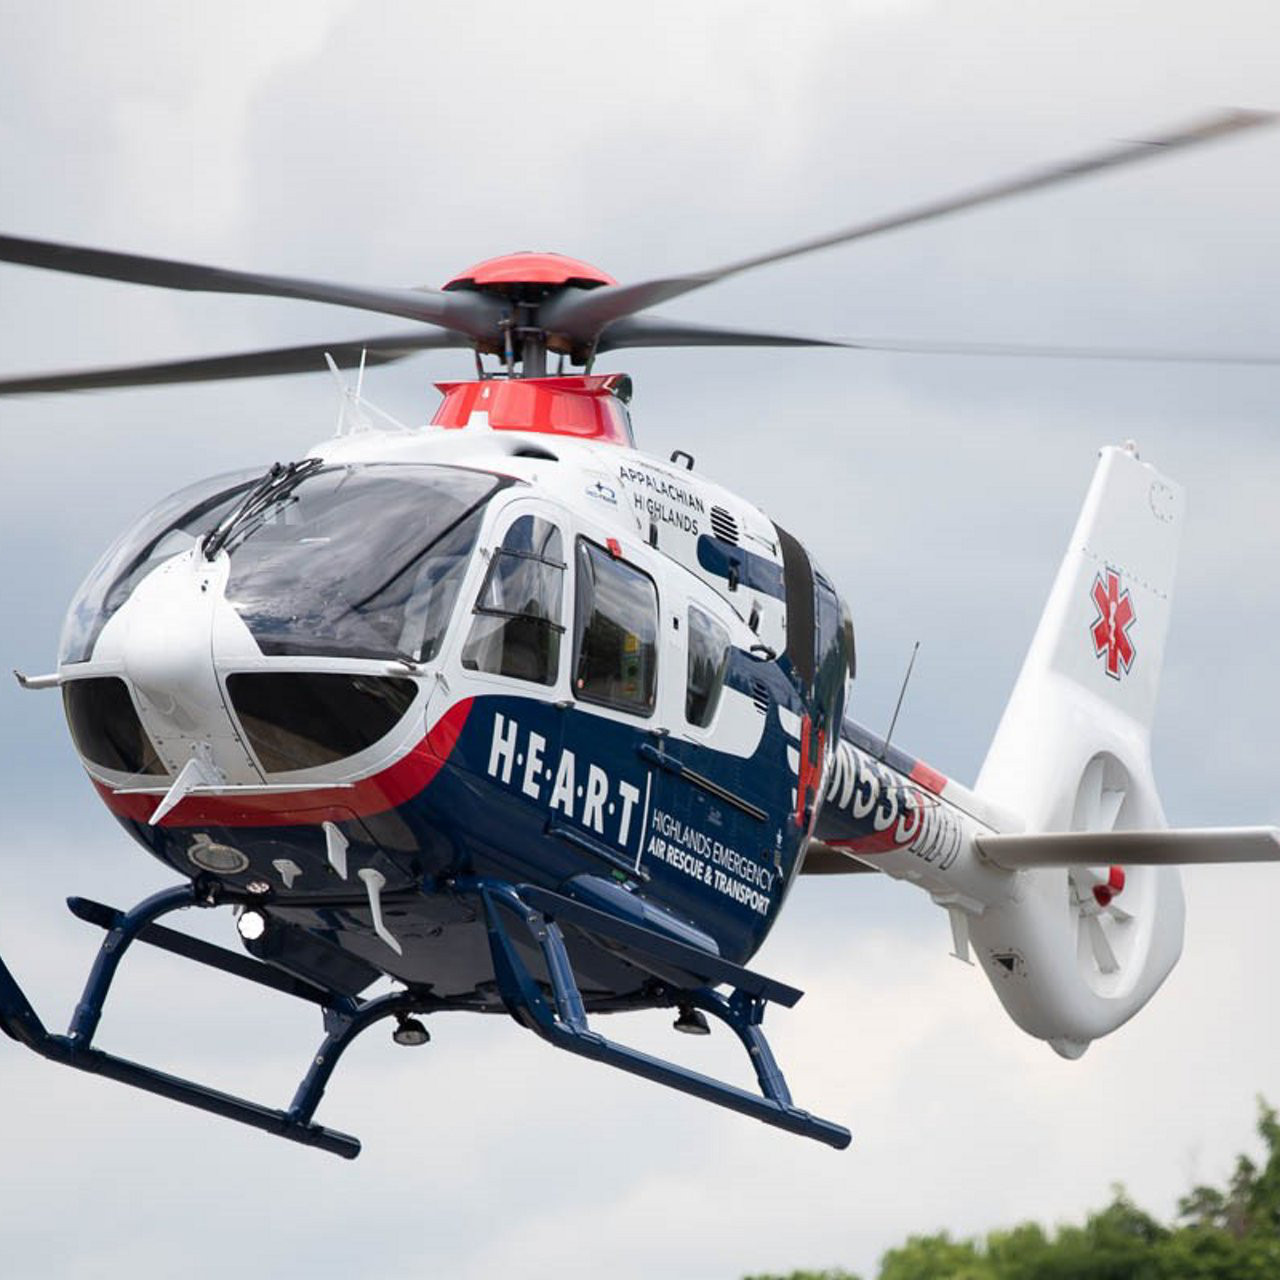 Global Medical Response orders 21 new Airbus helicopters